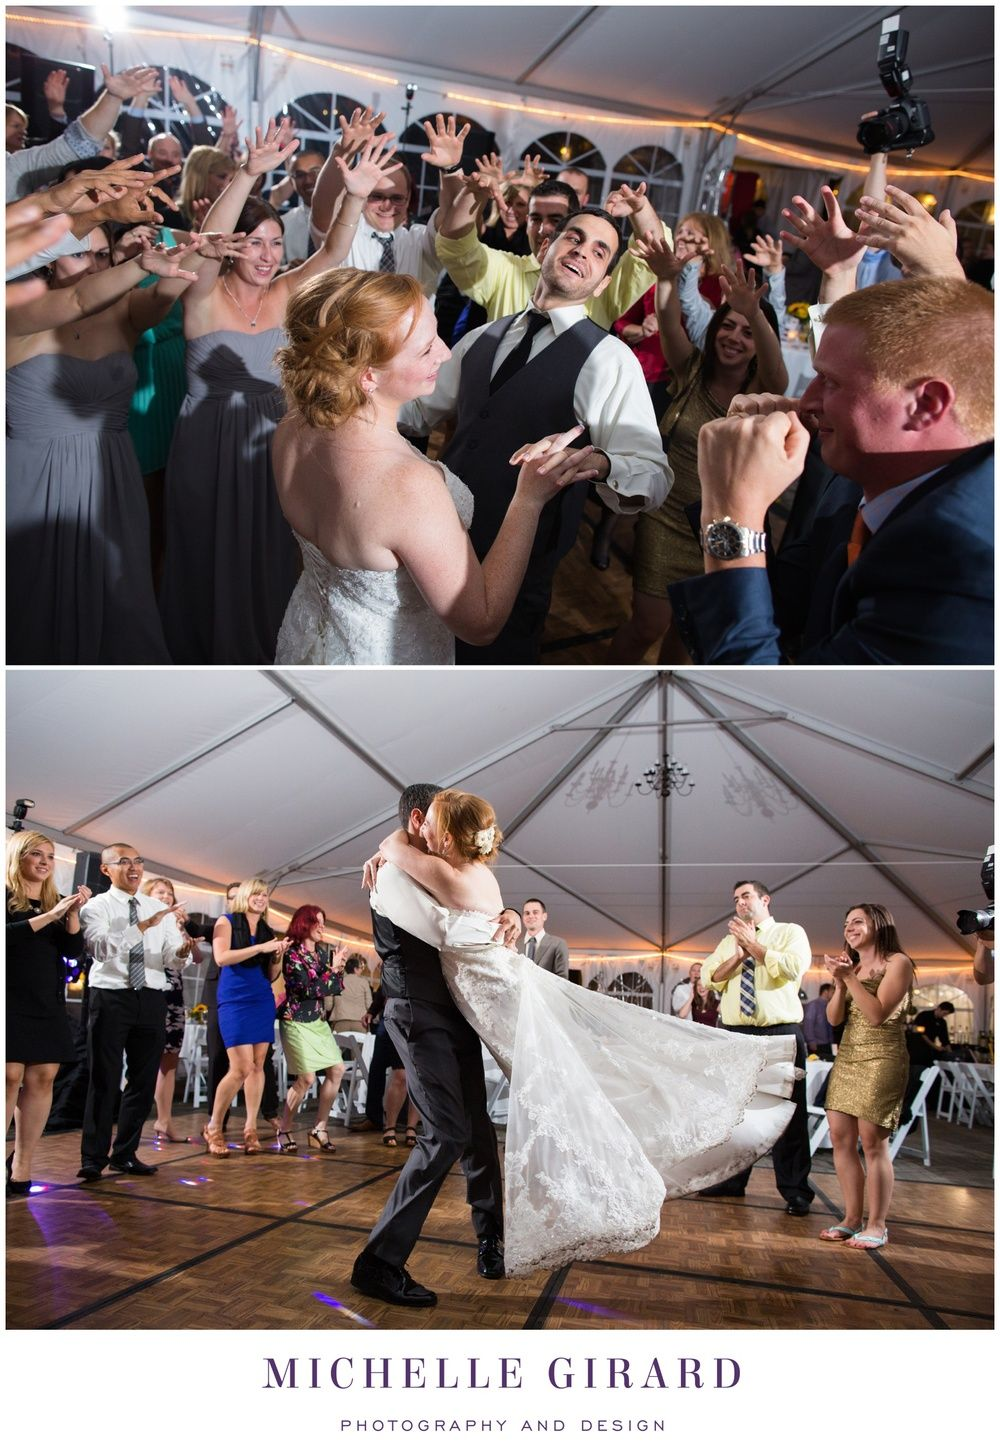 Bride and Groom Dancing at Reception :: Fall Tent Wedding Reception on a Rainy Day :: Charming New England Inn Wedding at The Lord Jeffery Inn in Amherst, Massachusetts :: Michelle Girard Photography and Design